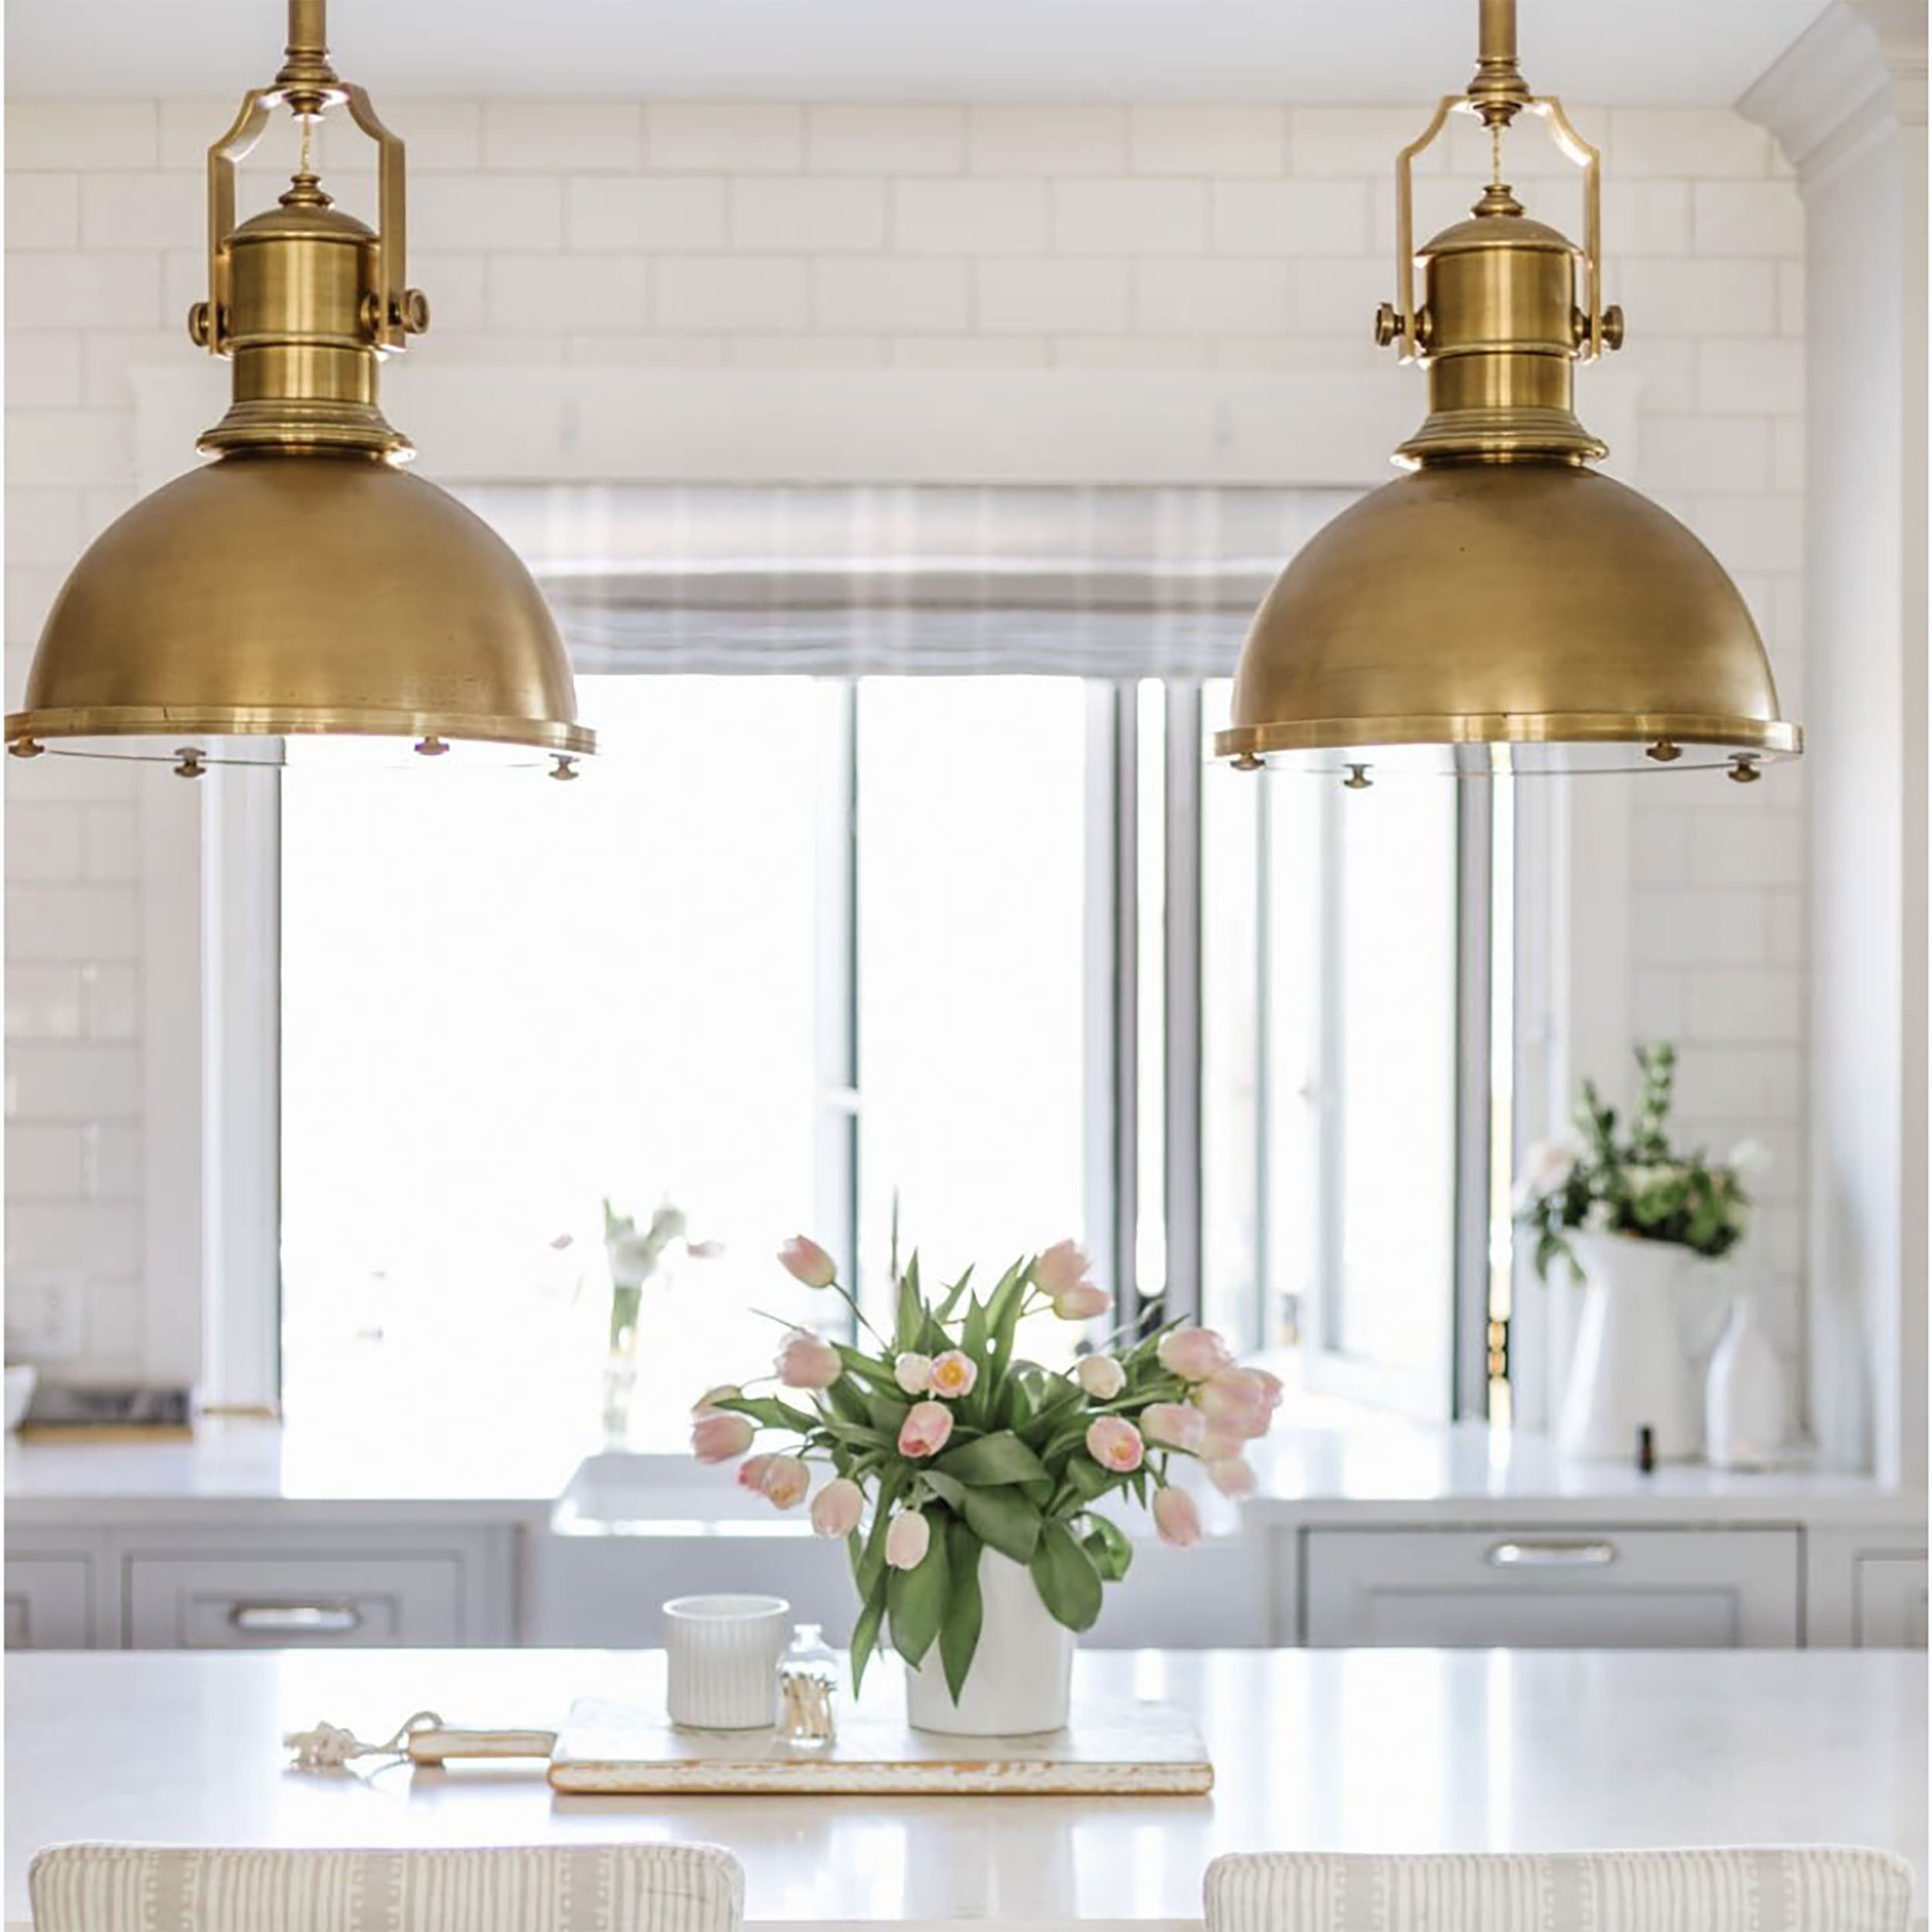 In My Home: Lighting I Love with Carmen 6-Light Kitchen Island Linear Pendants (Image 20 of 30)